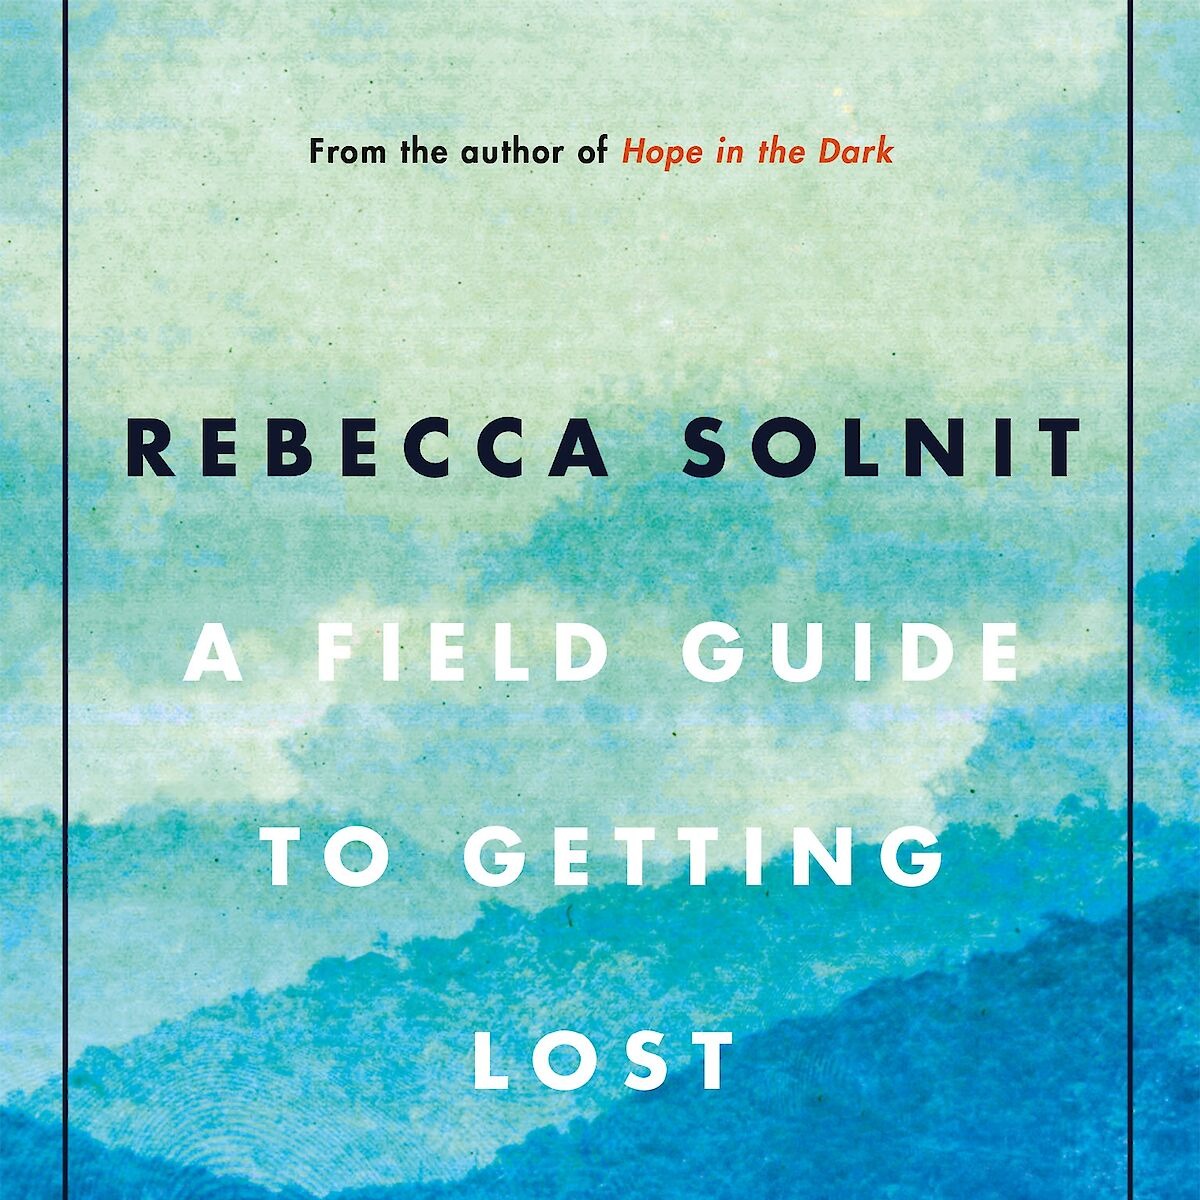 An excerpt of the front cover of paperback version of 'A Field Guide to Getting Lost